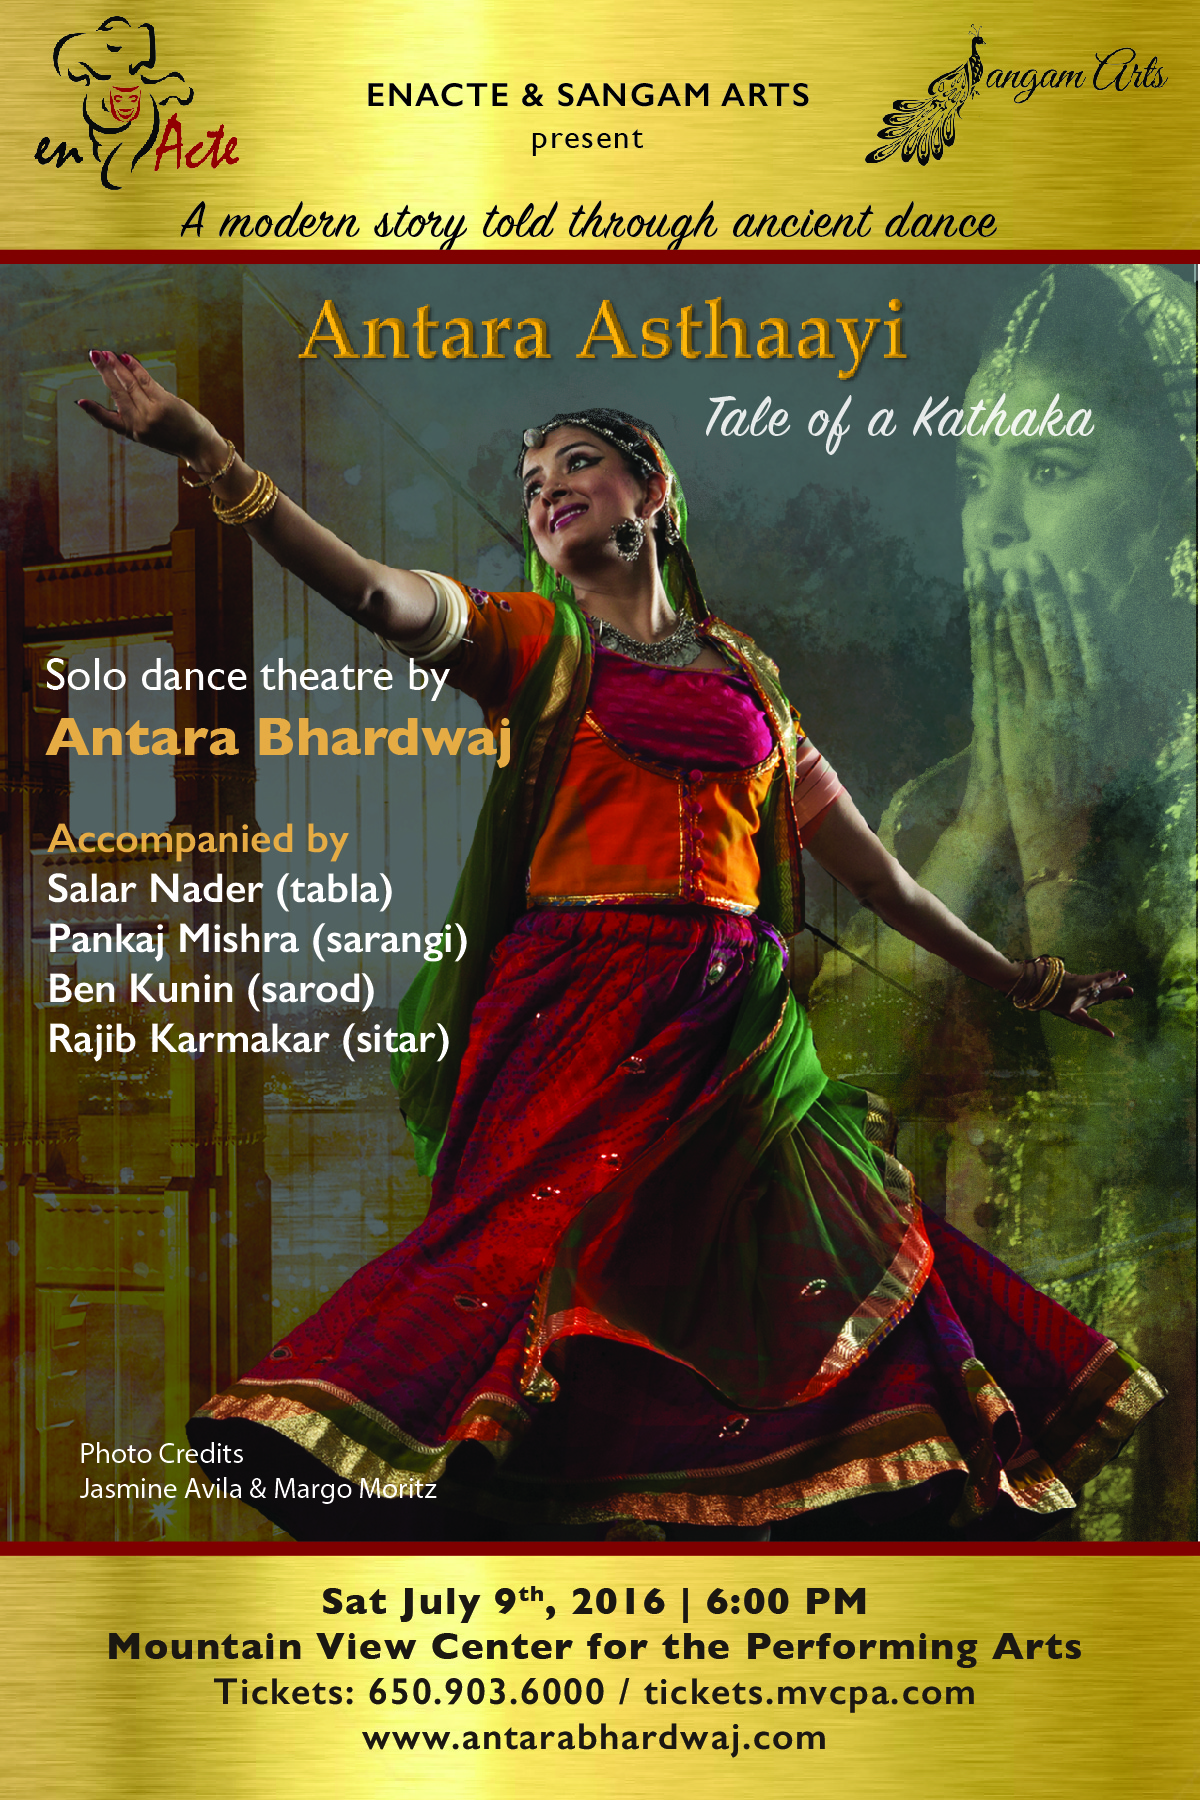 Official flyer for the performance Antara Asthaayi. July 9, 2016.